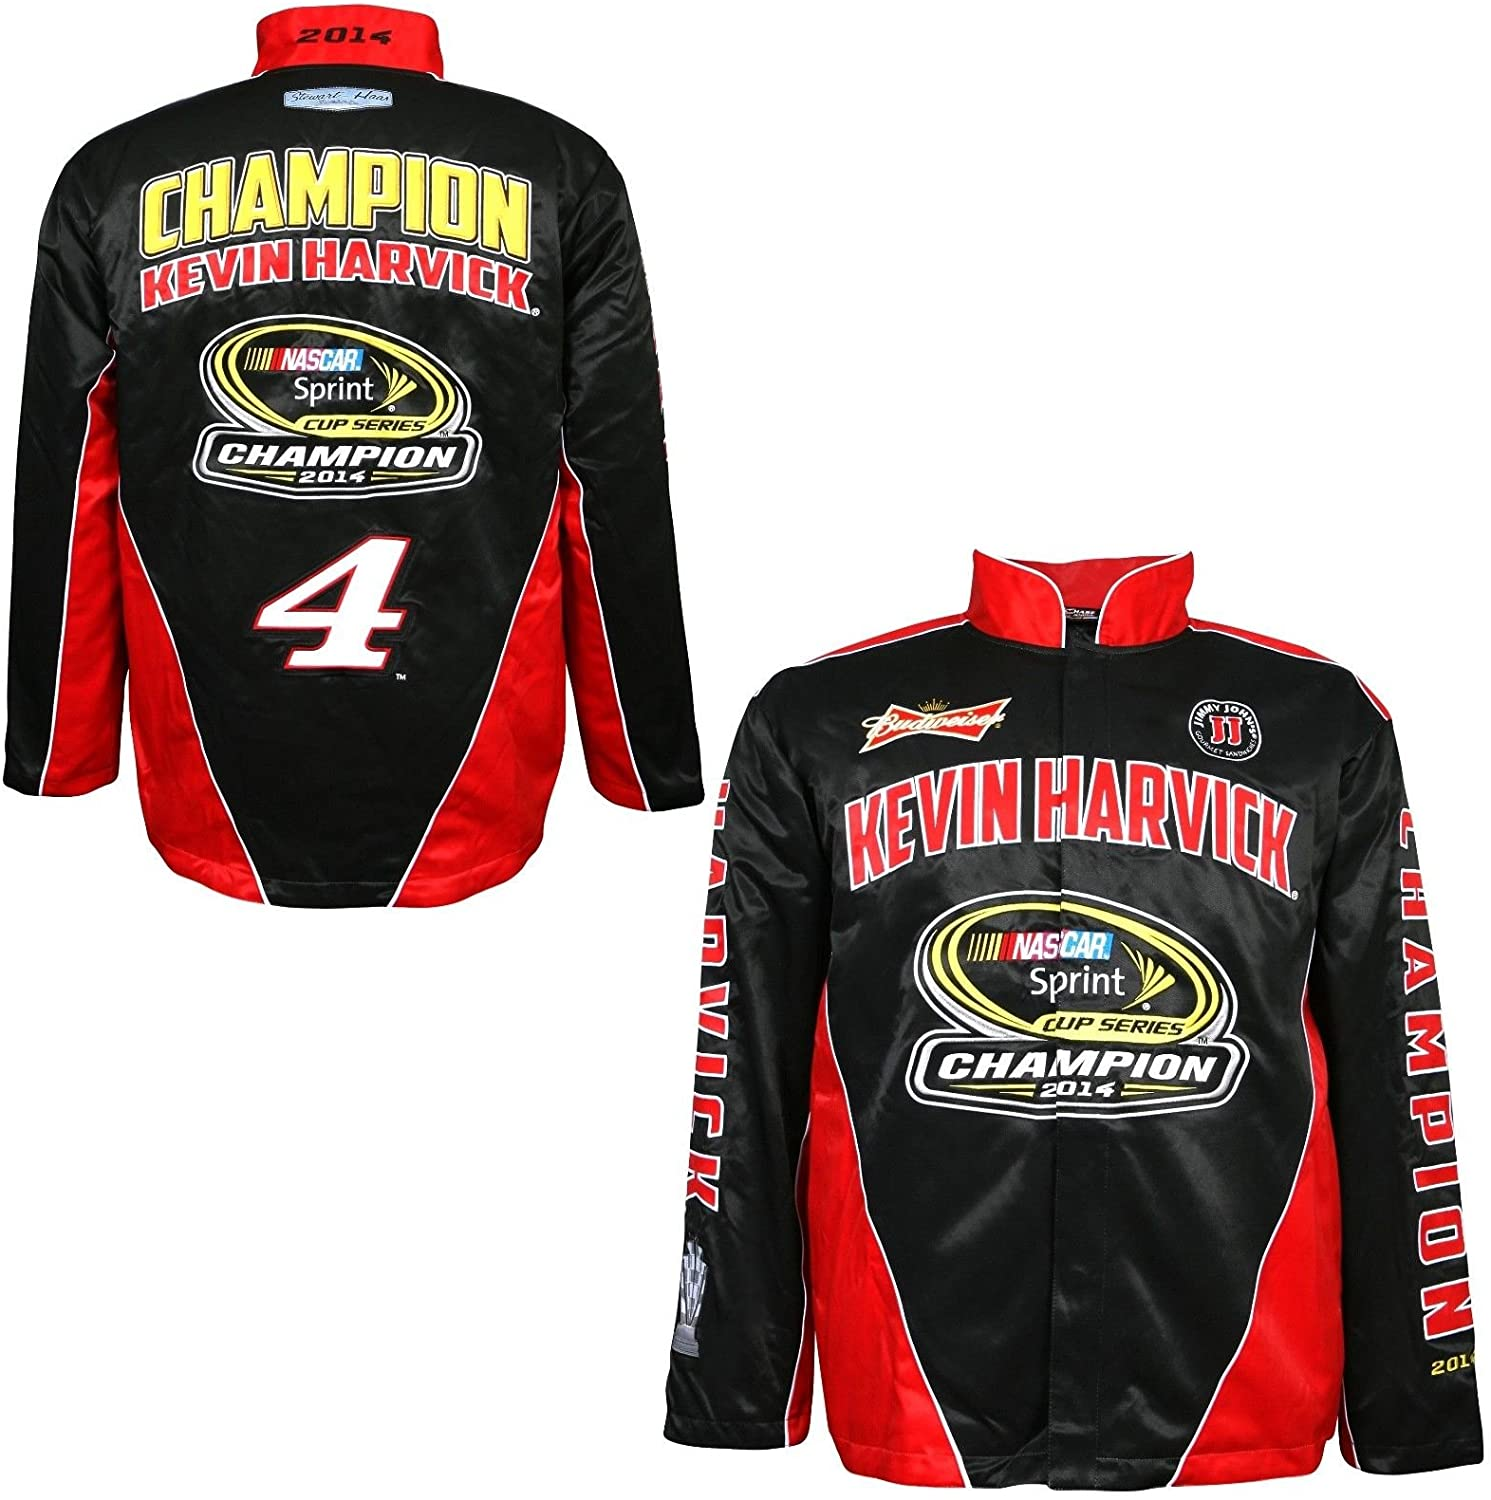 Kevin Harvick 2014 NASCAR Sprint Cup Series Champion Jacket, XXLarge